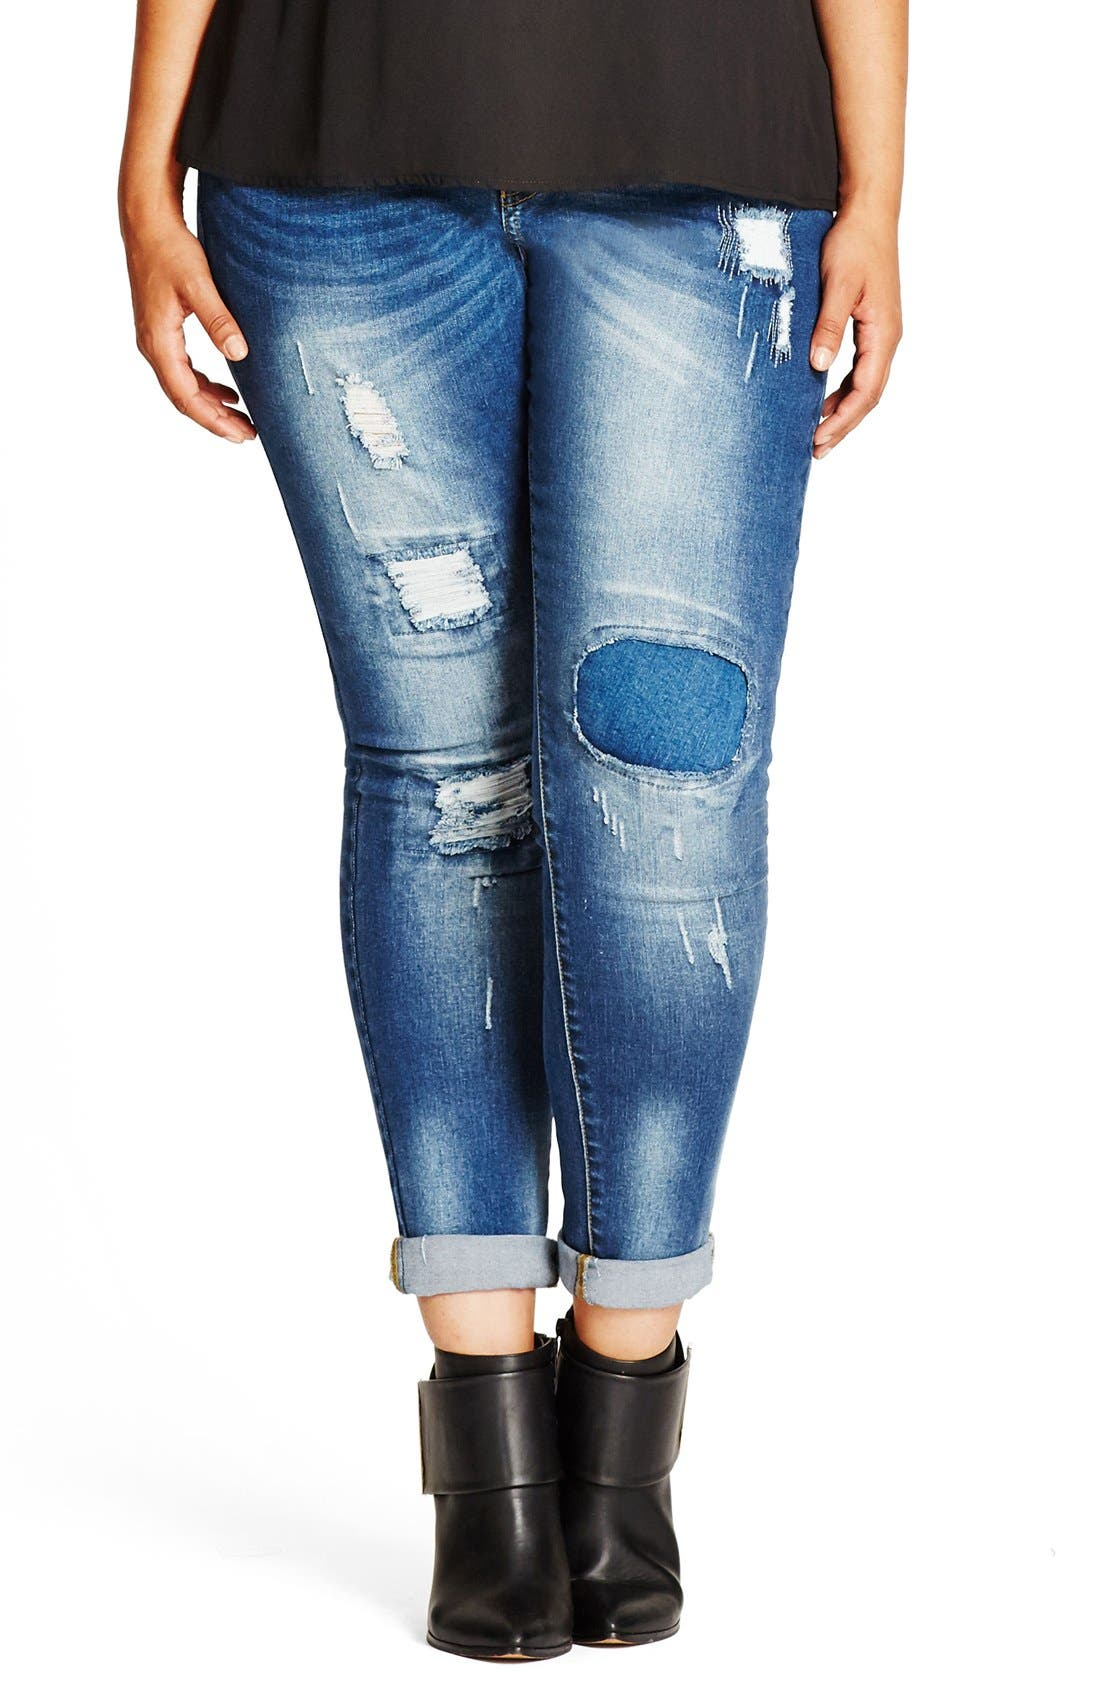 Main Image - City Chic Patched Up Distressed Skinny Jeans (Plus Size)